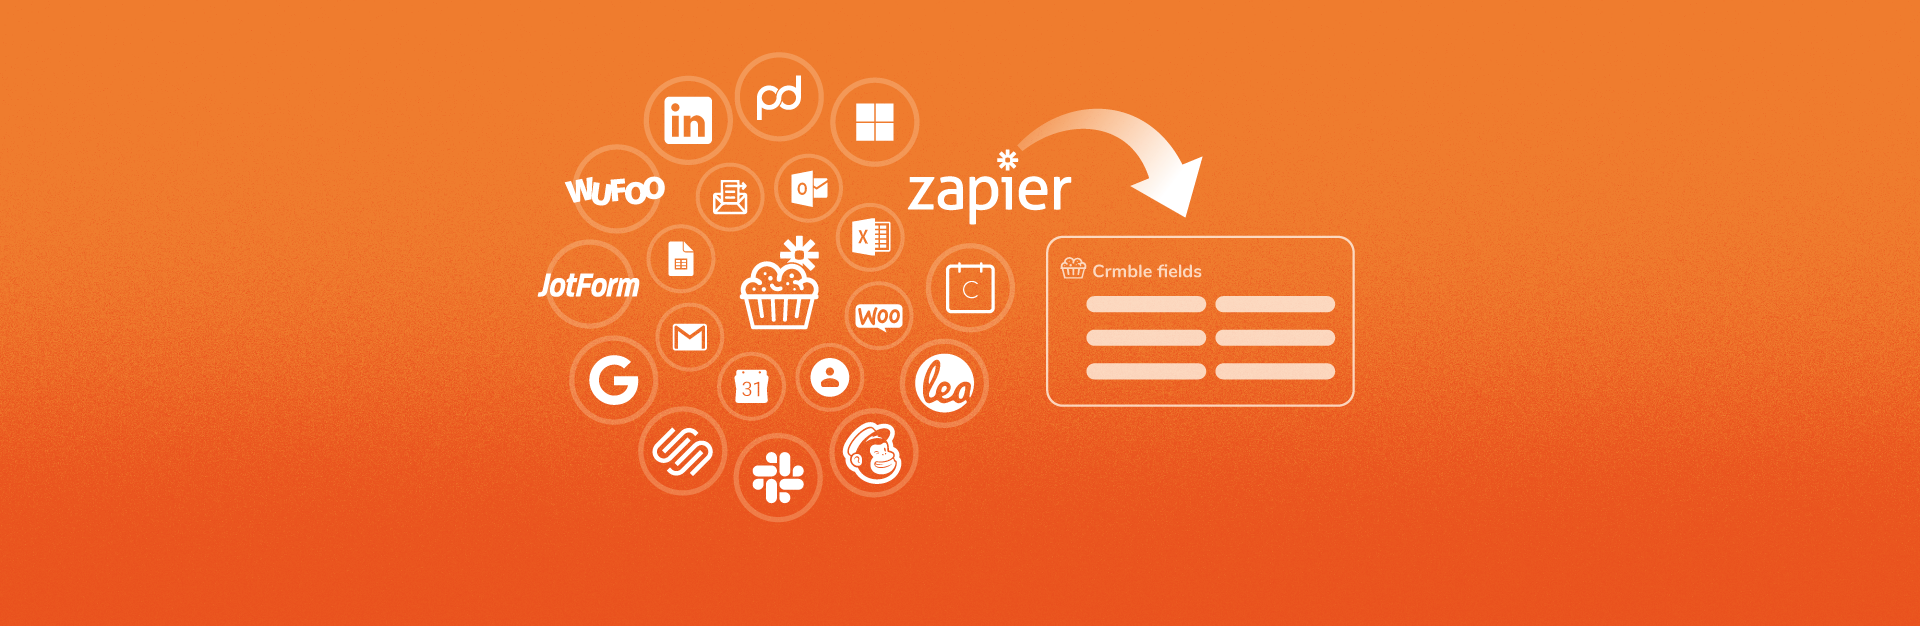 Crmble logo surrounded by a lot of apps you can connect to Crmble thanks to Zapier